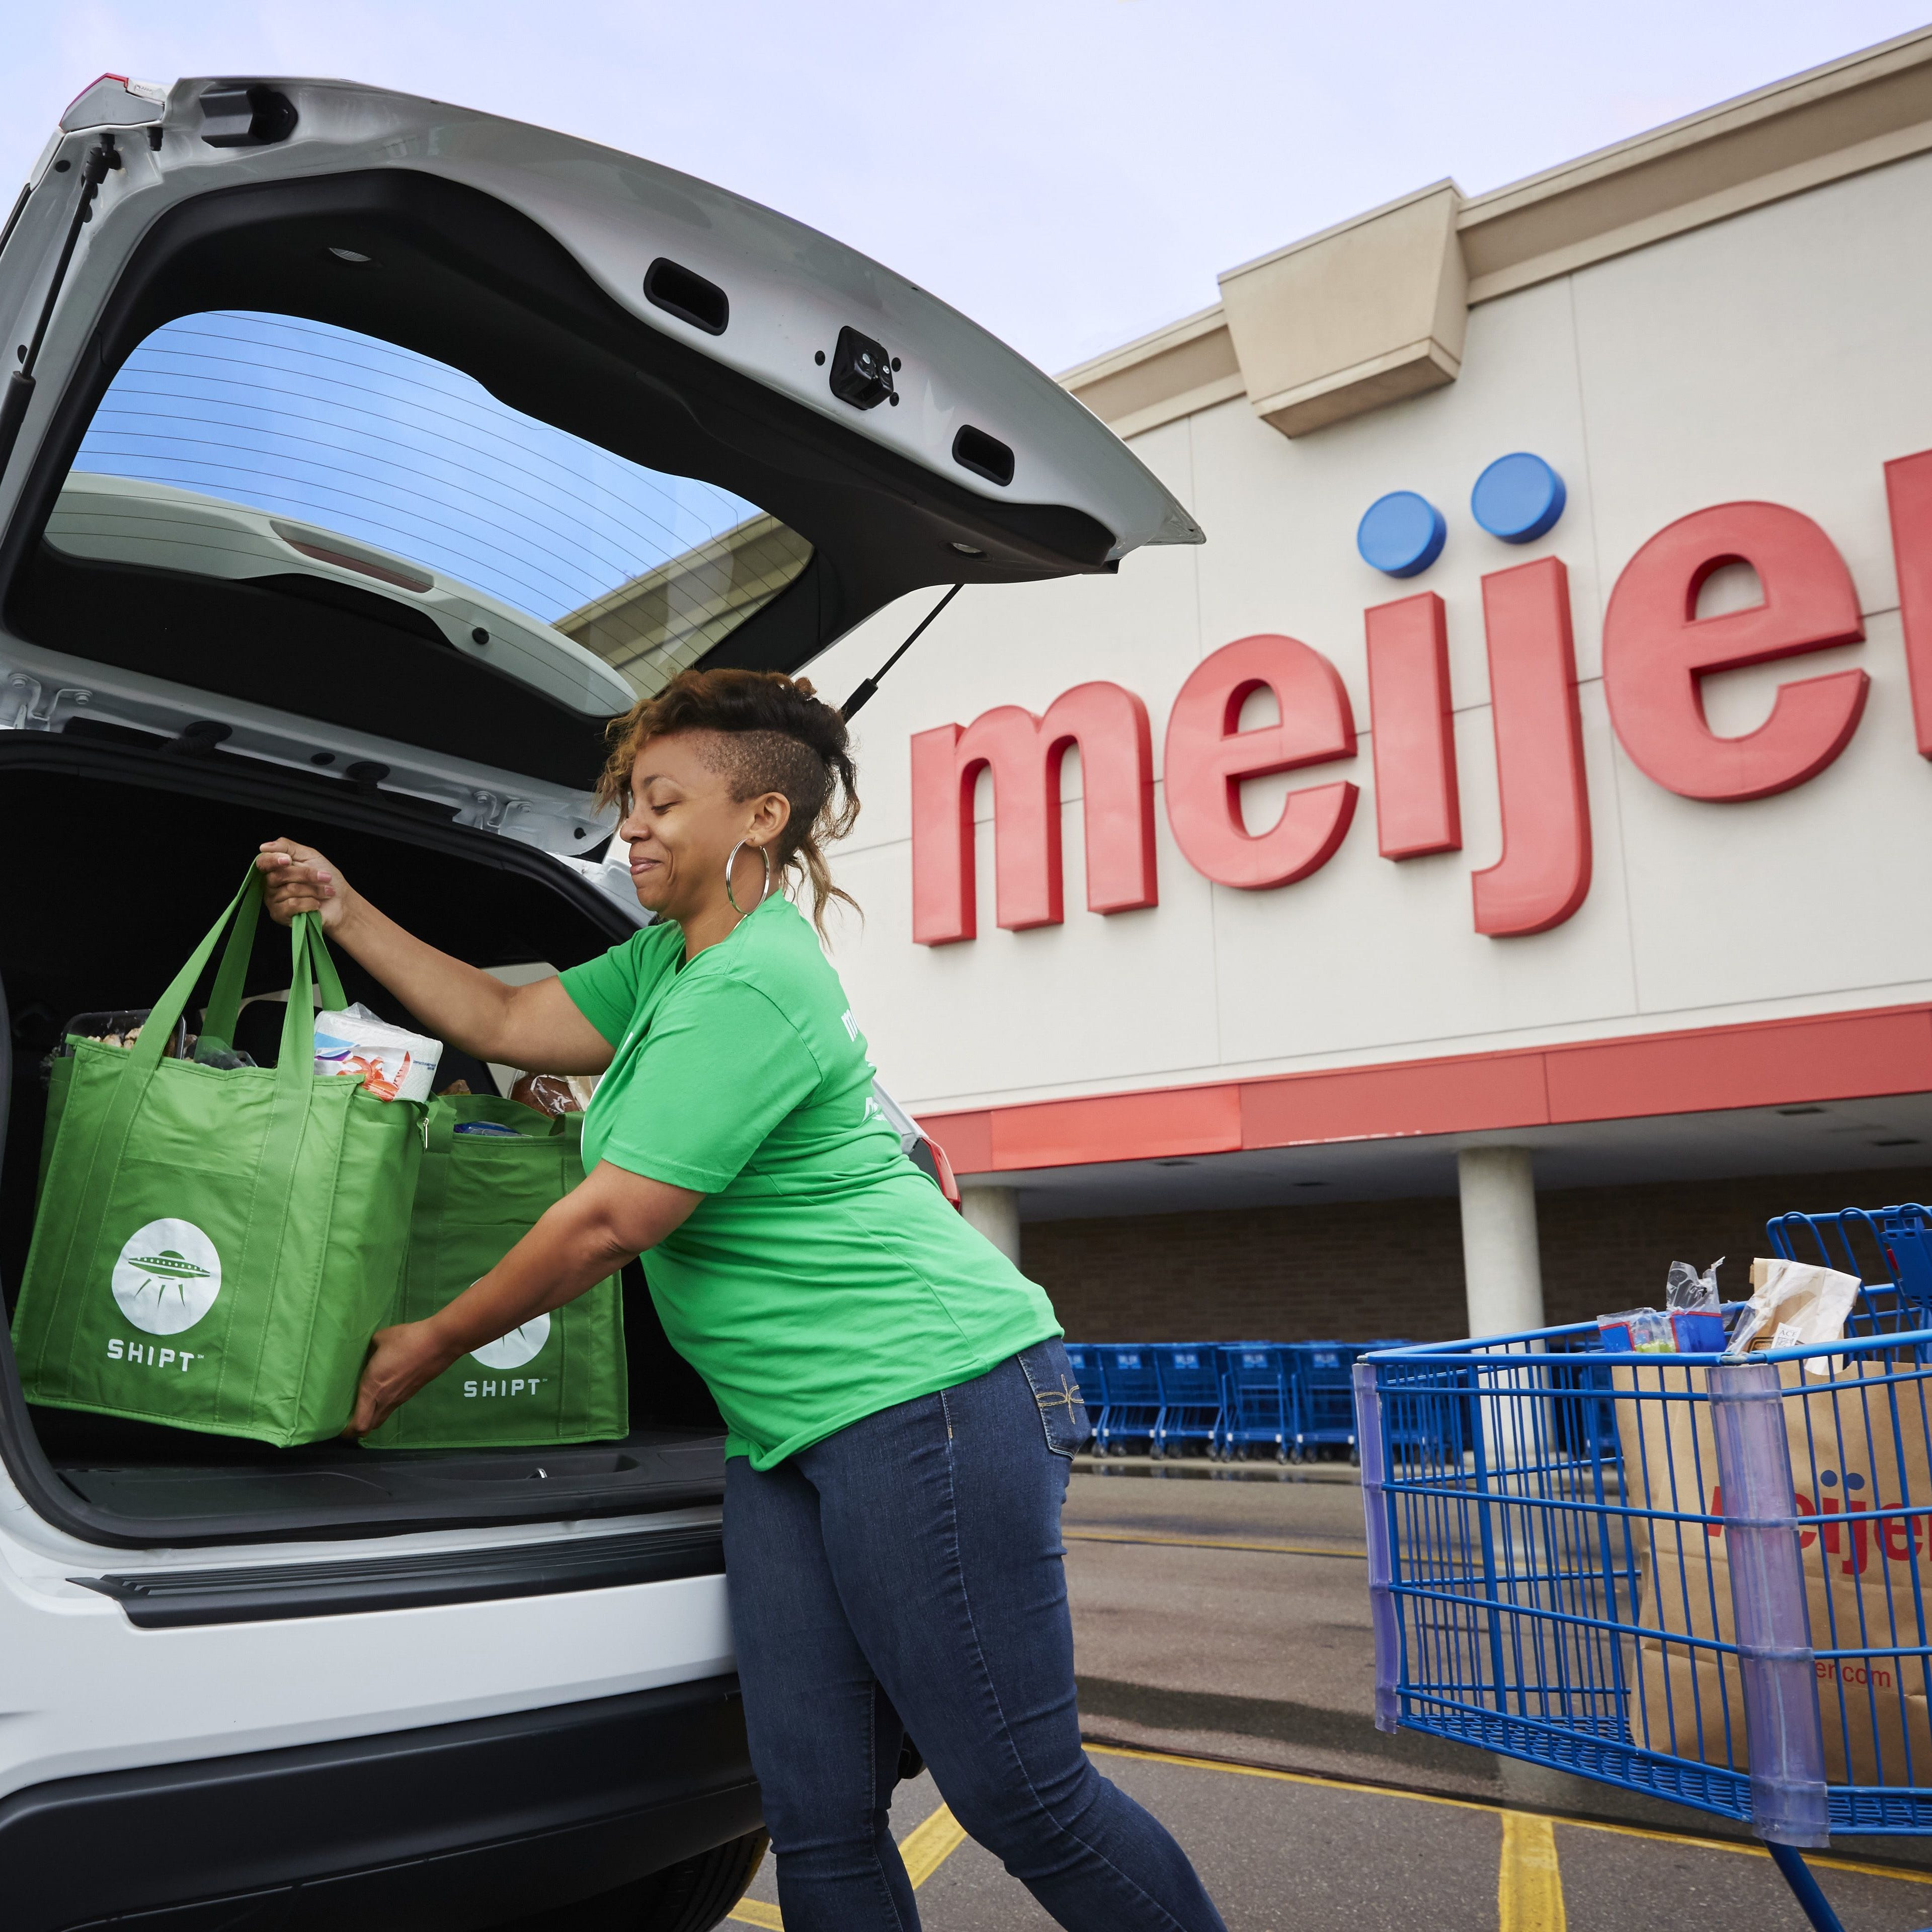 Food delivery in Battle Creek goes way beyond pizza